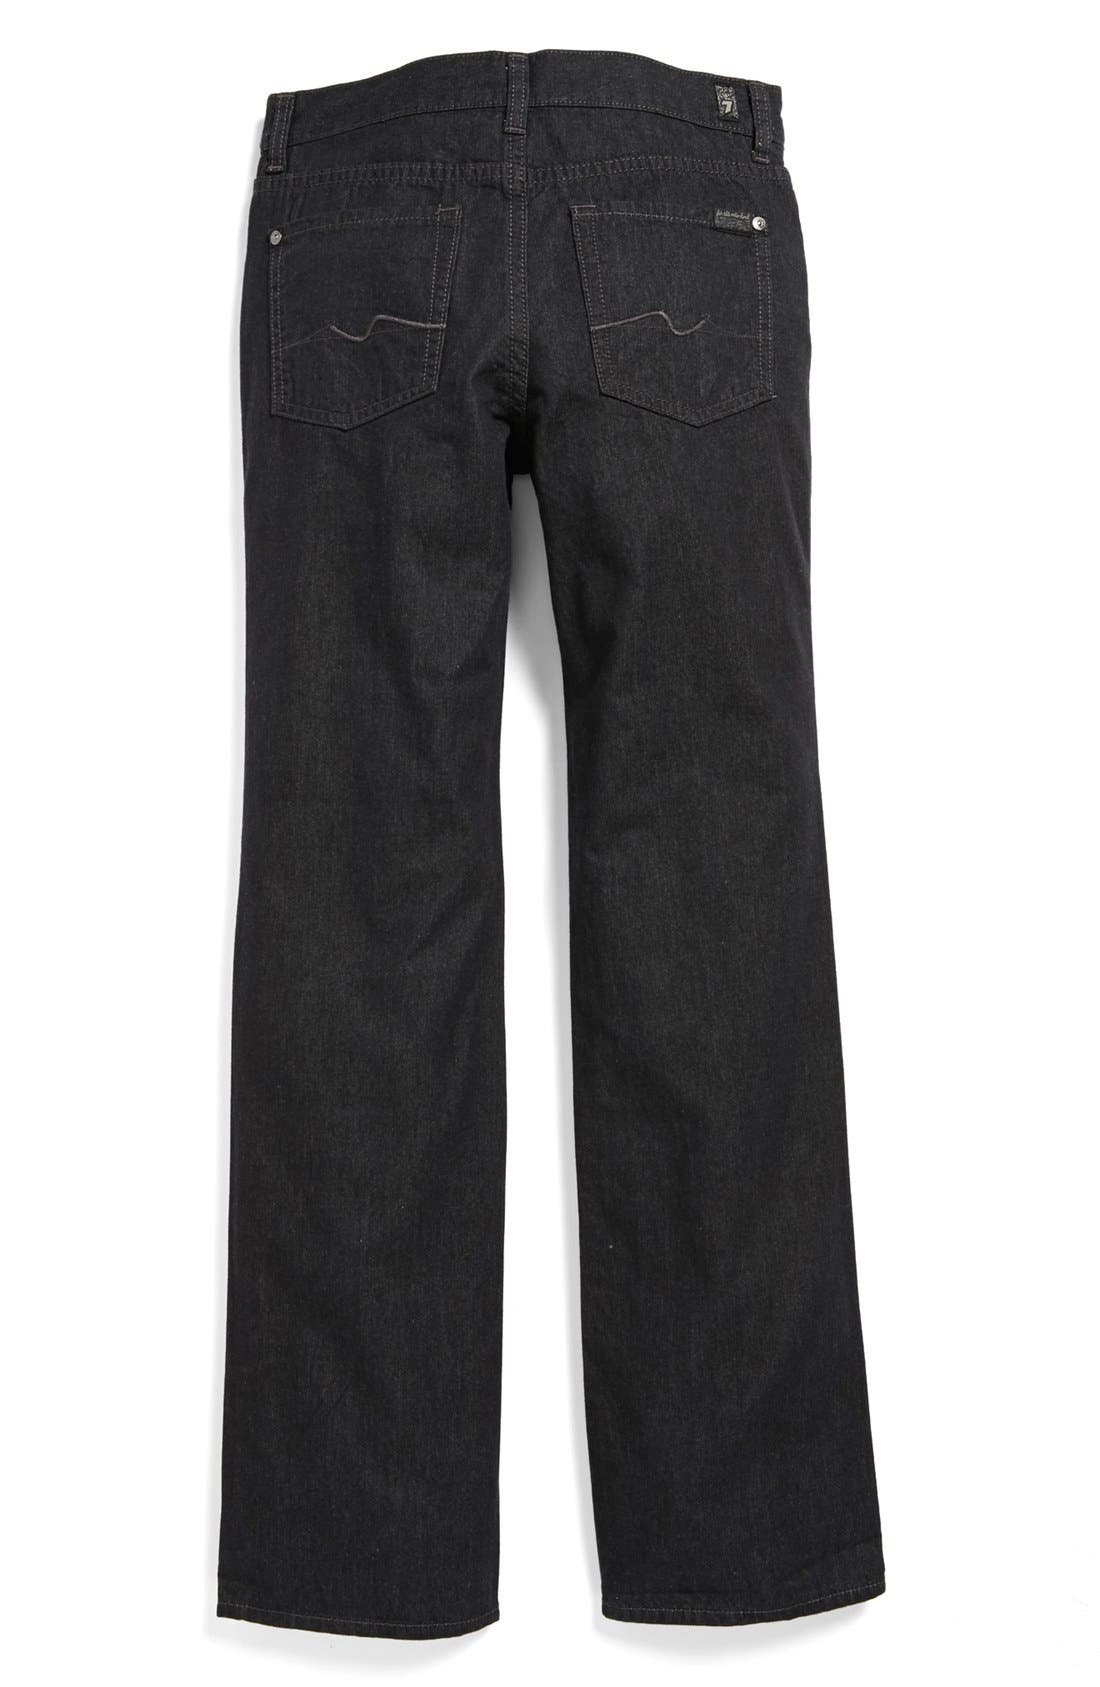 Main Image - 7 For All Mankind® 'Standard' Straight Leg Jeans (Big Boys)